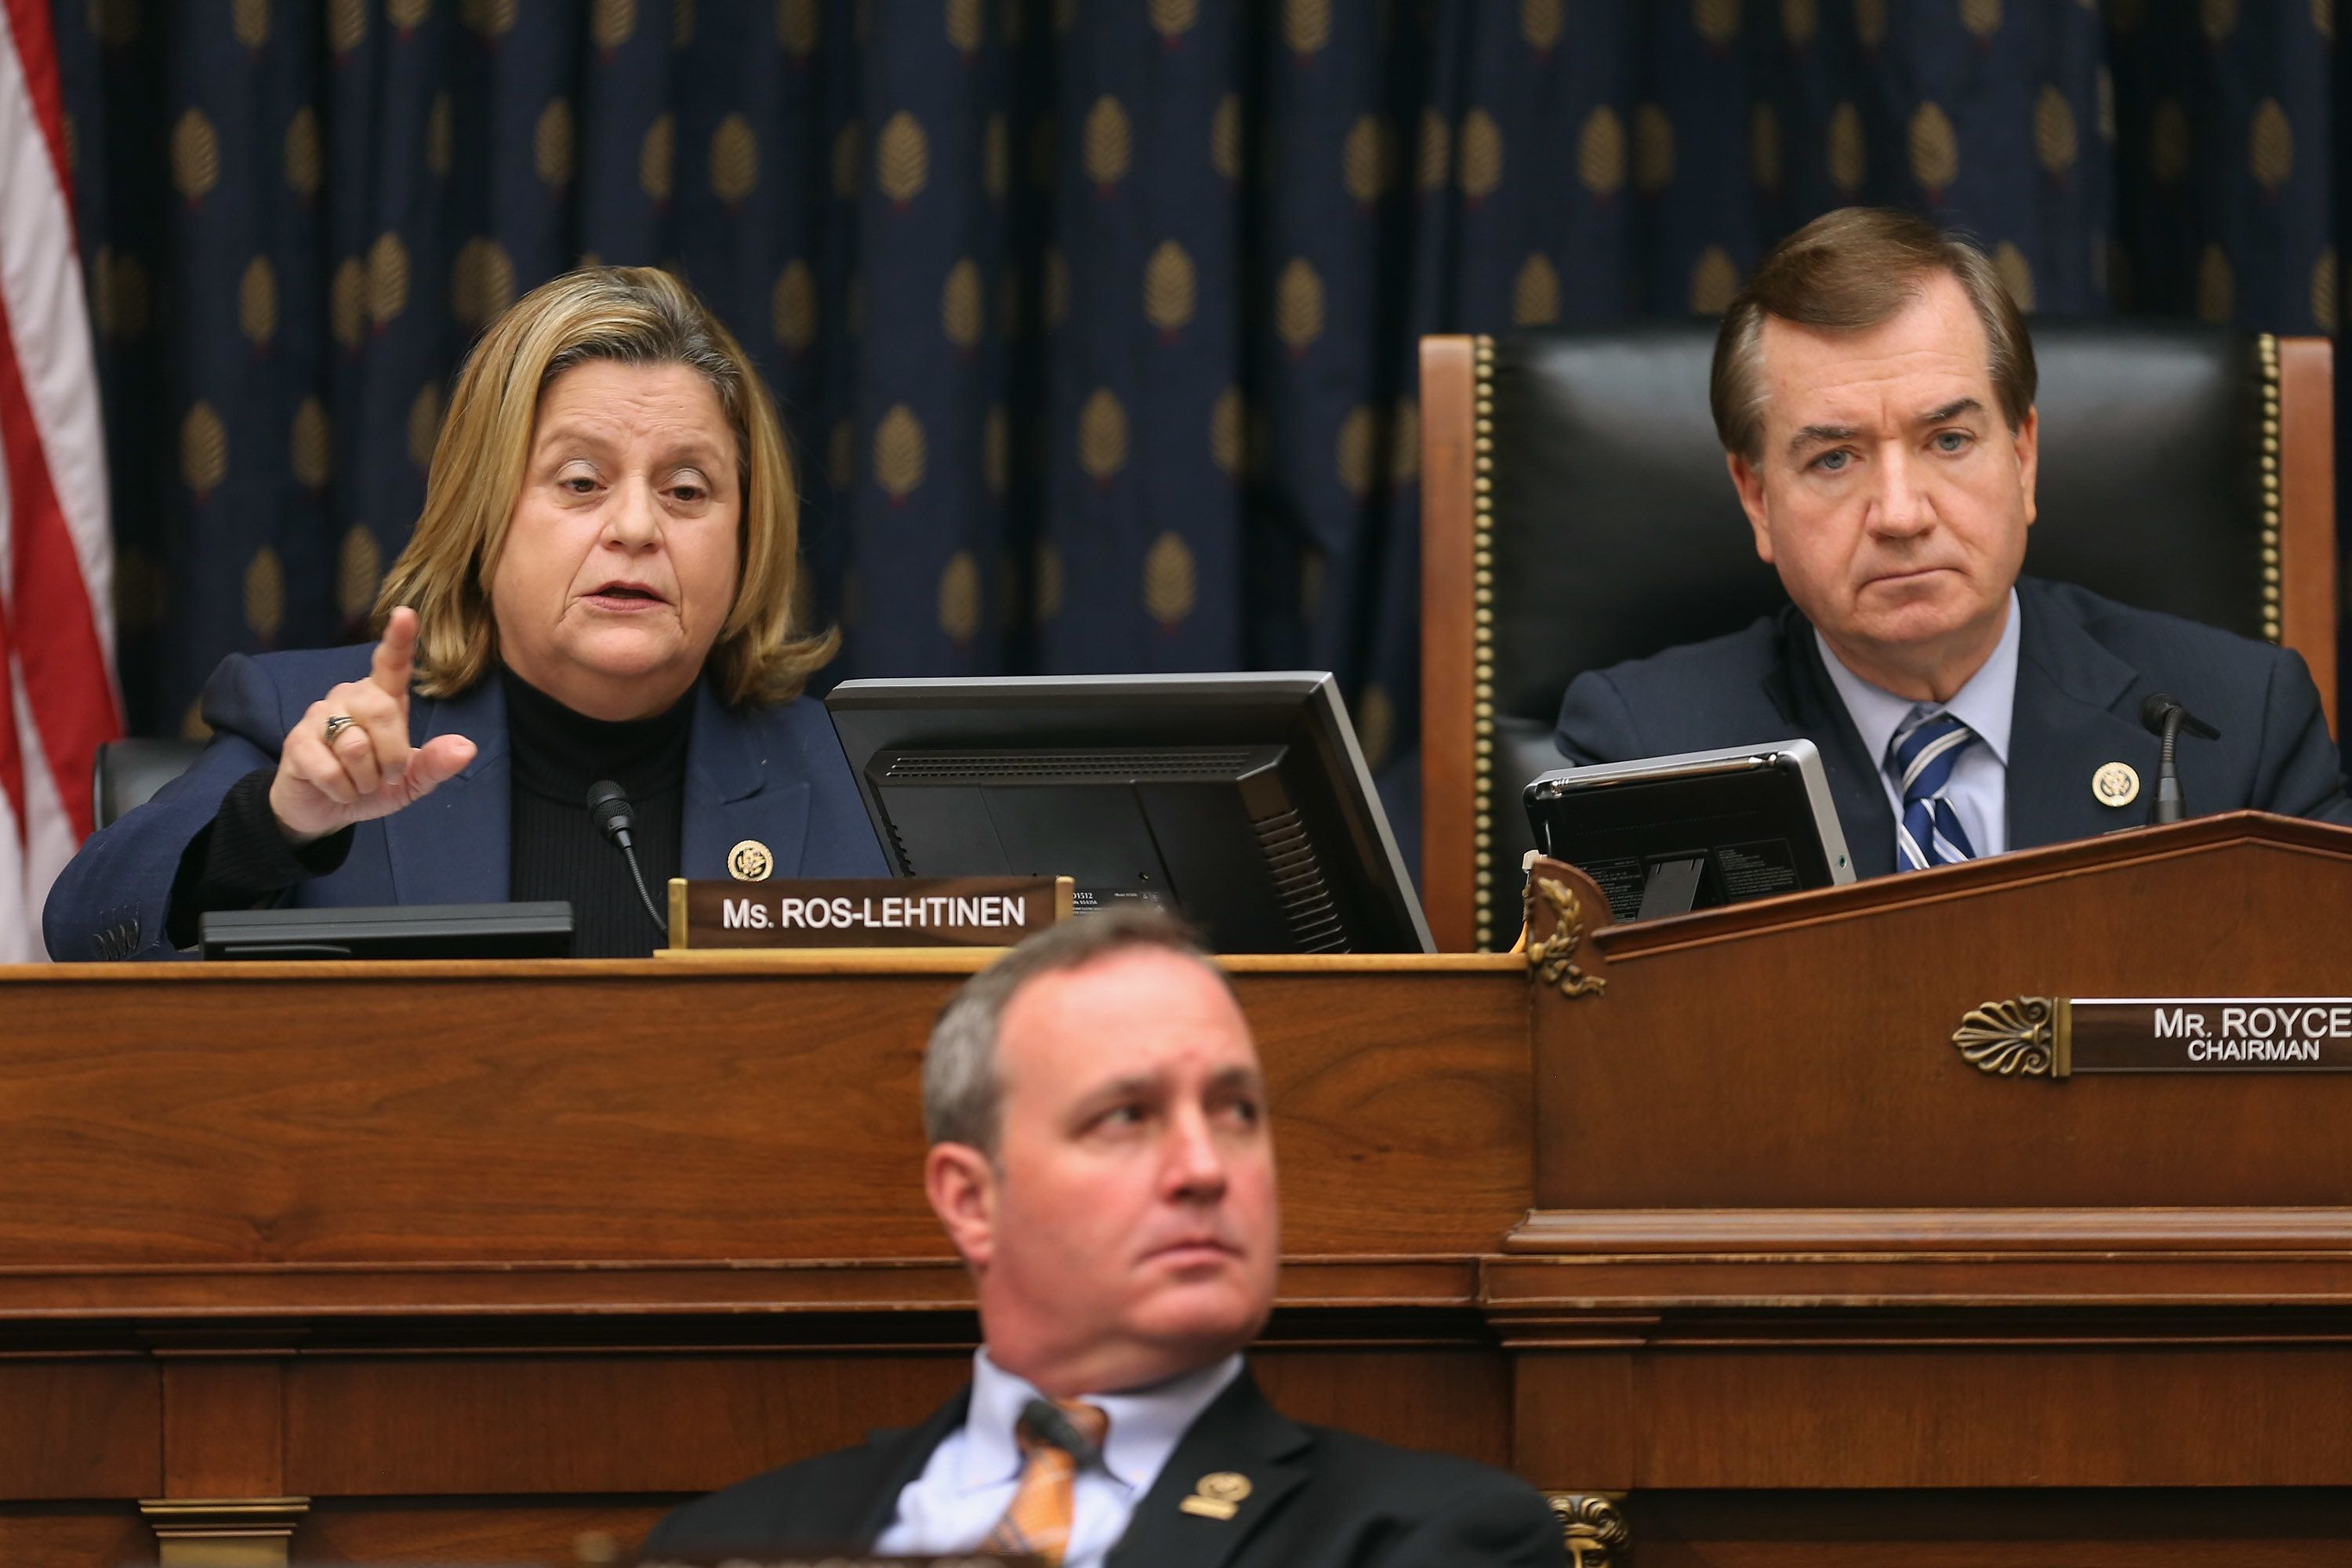 WASHINGTON, DC - FEBRUARY 04:  House Foreign Affairs Committee member Rep. Ileana Ros-Lehtinen (L) uses her alloted five minutes to question witnesses without leaving time for answers during a hearing about Cuba policy with committee Chairman Ed Royce (R-CA) (R) and Rep. Jeff Duncan (D-SC) in the Rayburn House Office Building on Capitol Hill February 4, 2015 in Washington, DC. The committee heard testimony on the impact of U.S. policy changes toward Cuba and Assistant Secretary of State For Western Hemisphere Affairs Roberta Jacobson's recent trip to Havana to begin the reestablishment of diplomatic ties between the former Cold War enemies.  (Photo by Chip Somodevilla/Getty Images)